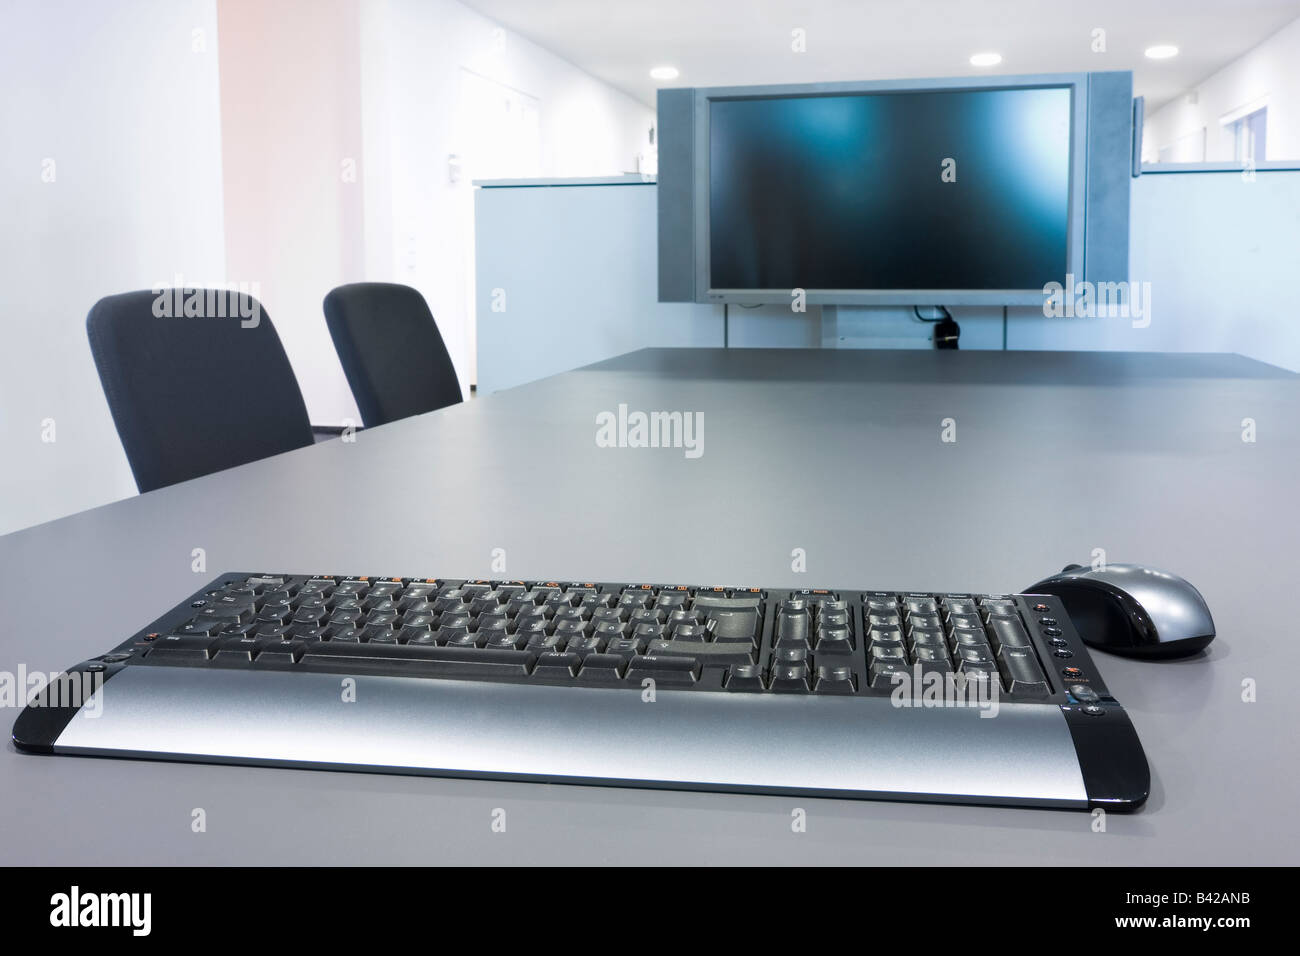 Flat Screen And Computer Keyboard In A Meeting Room Stock Photo